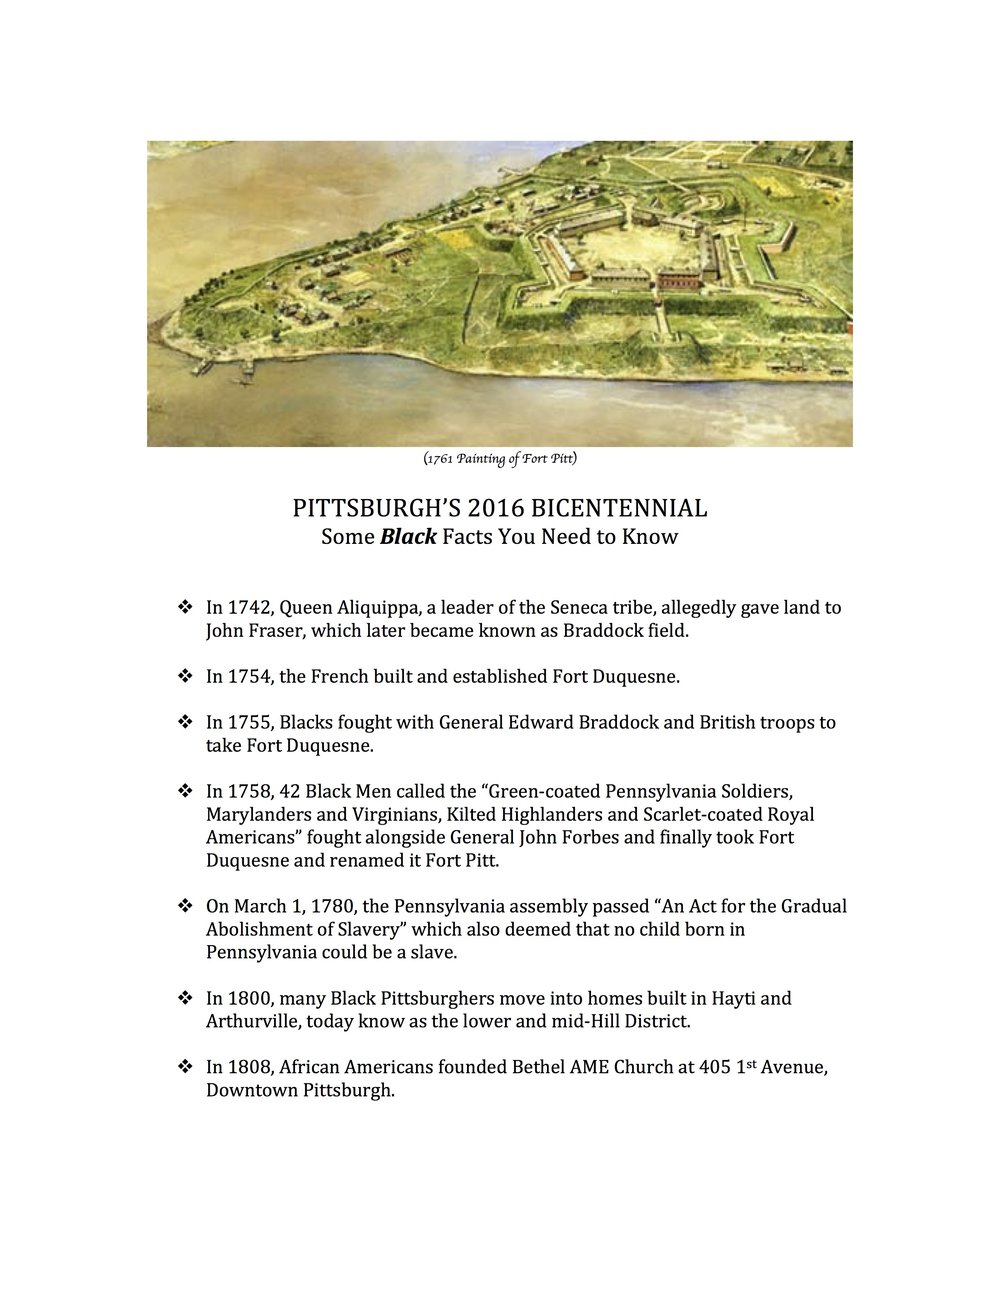 PGH BLACK FACTS YOU NEED TO KNOW